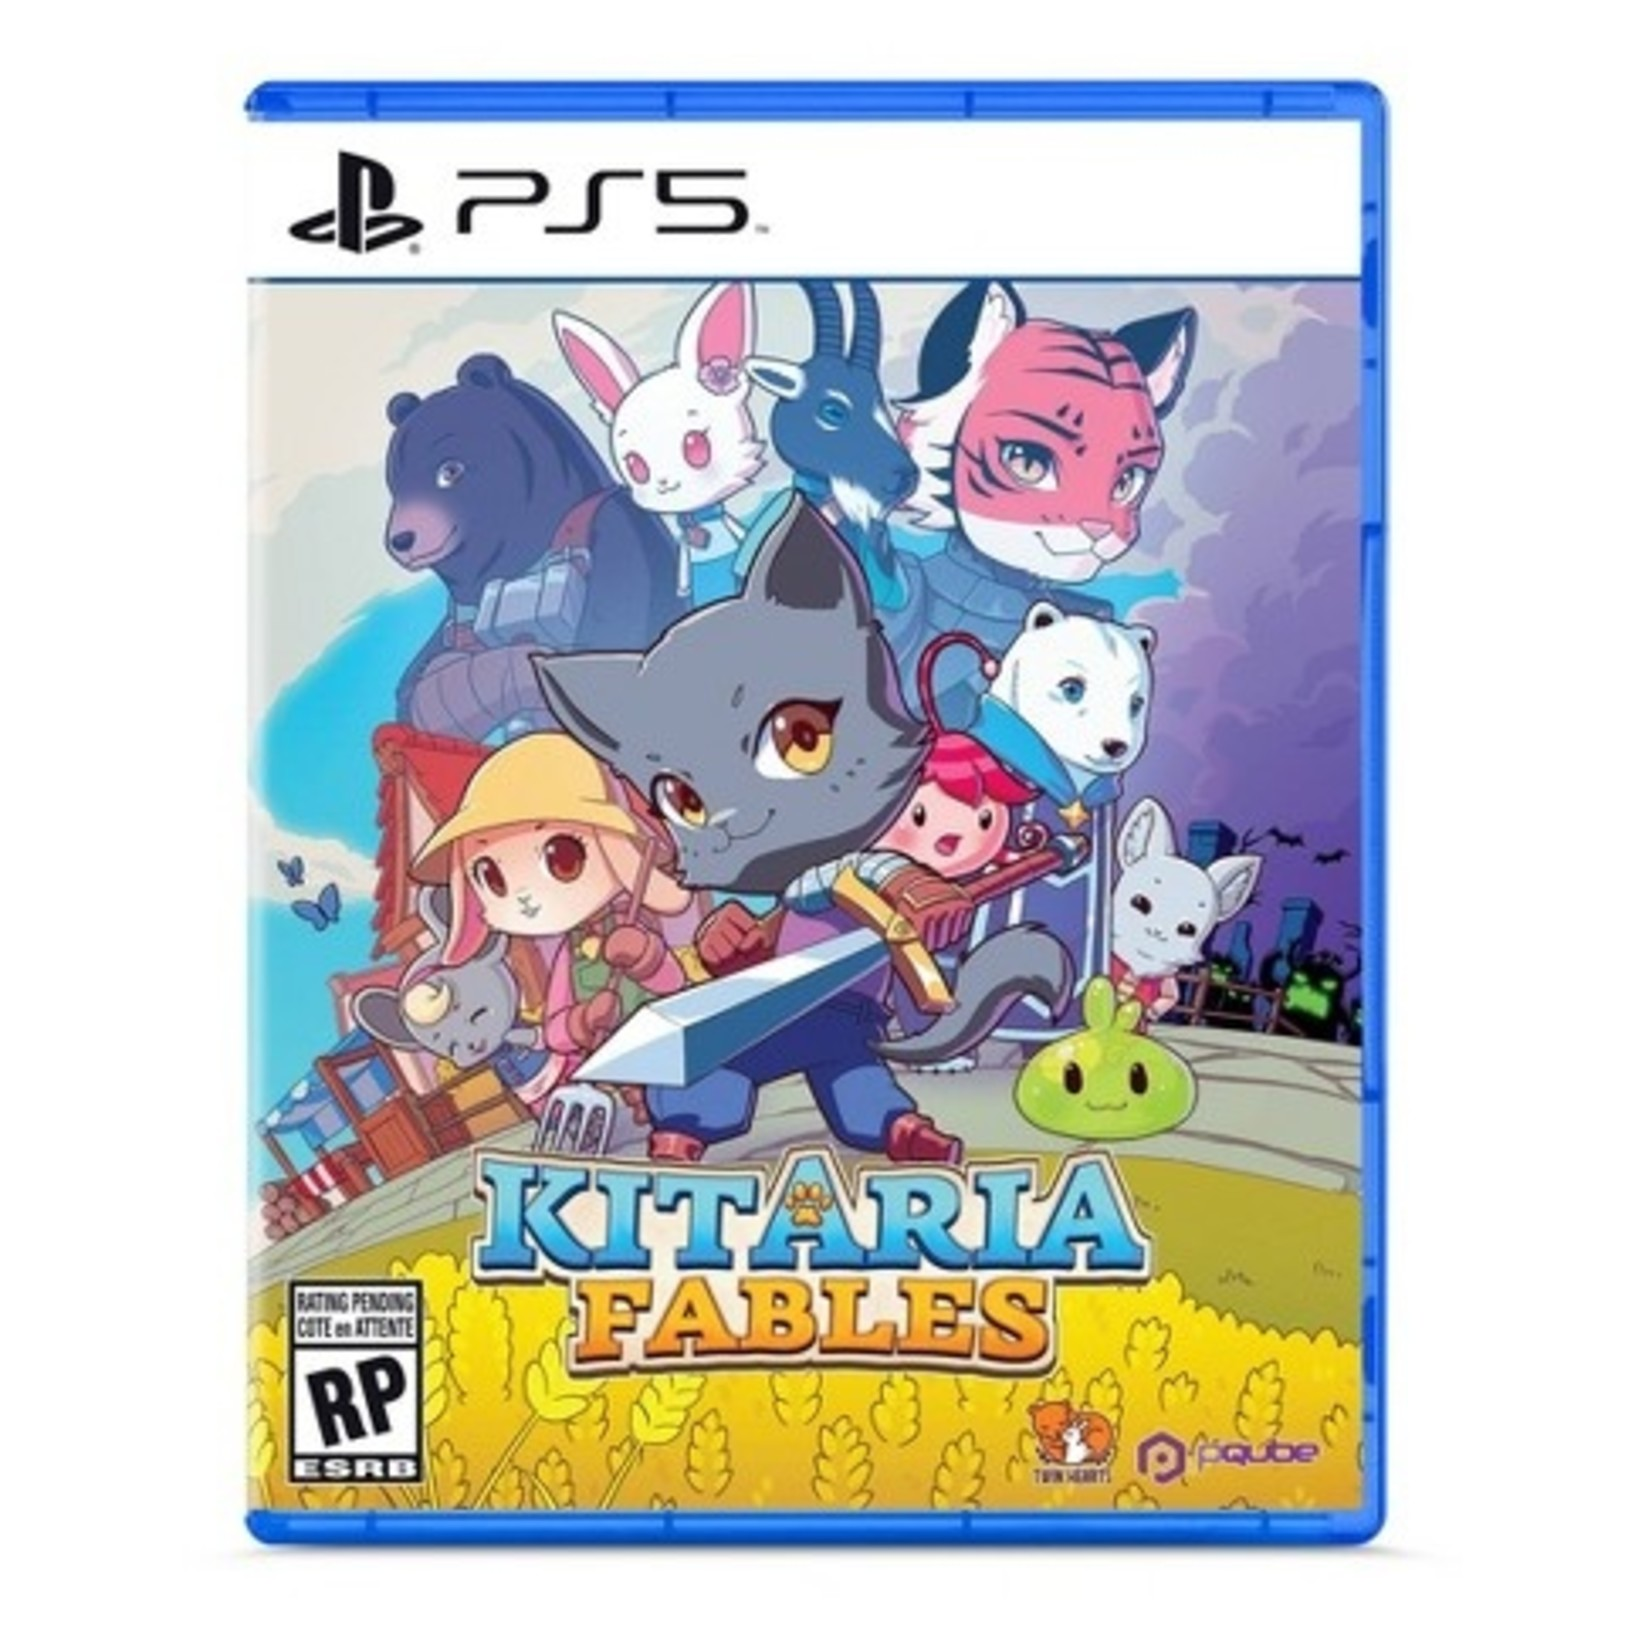 PS5-KitAria Fables